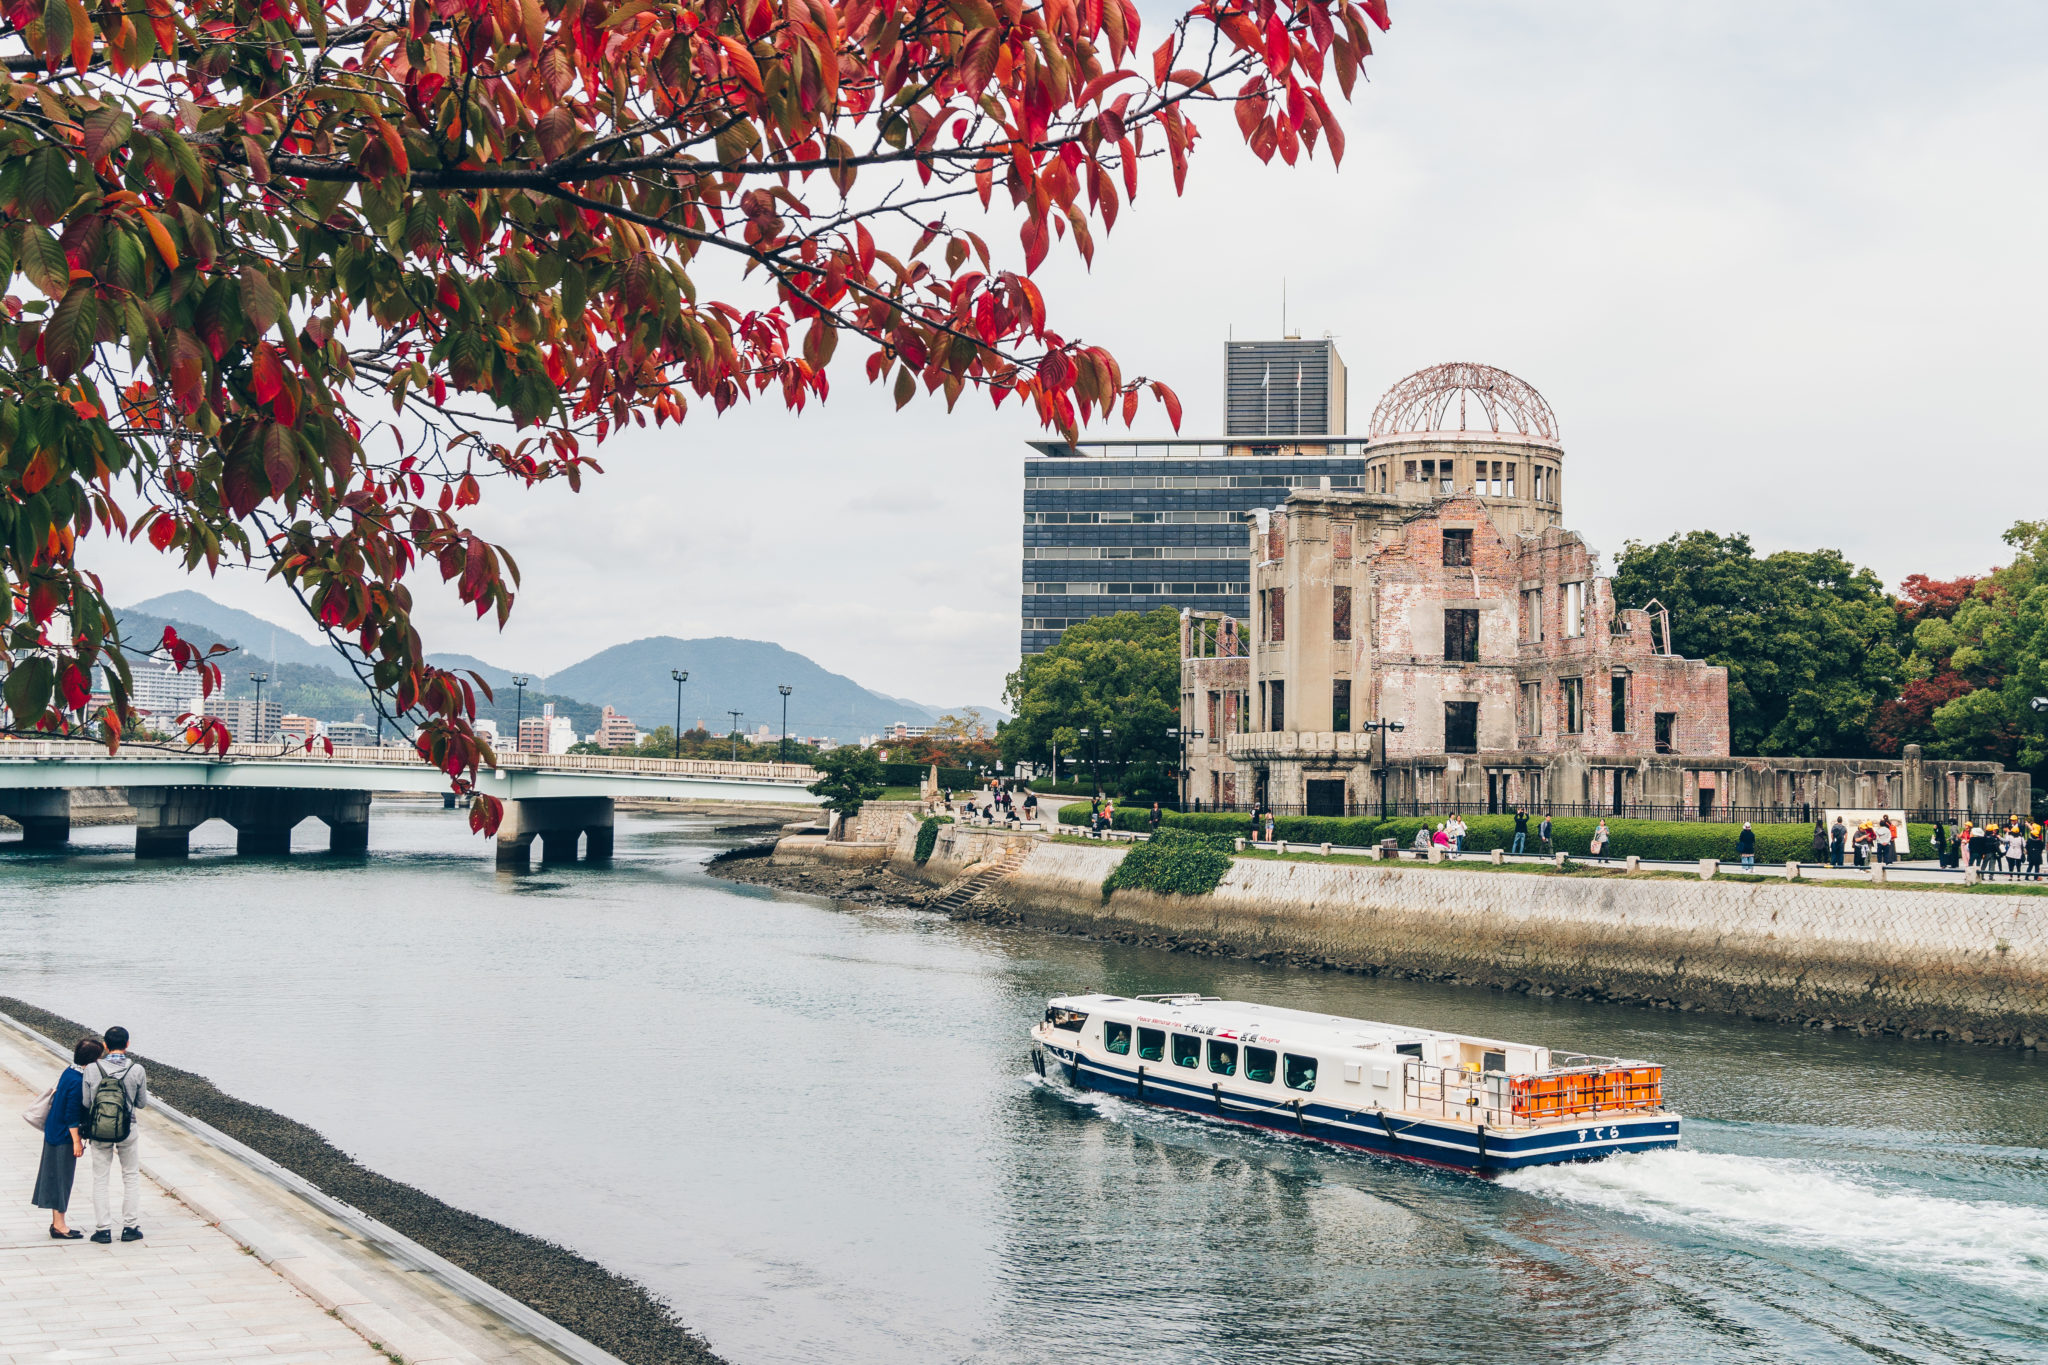 A ferry boat cruising between the Peace Memorial Park and the Atomic bomb dome in Hiroshima